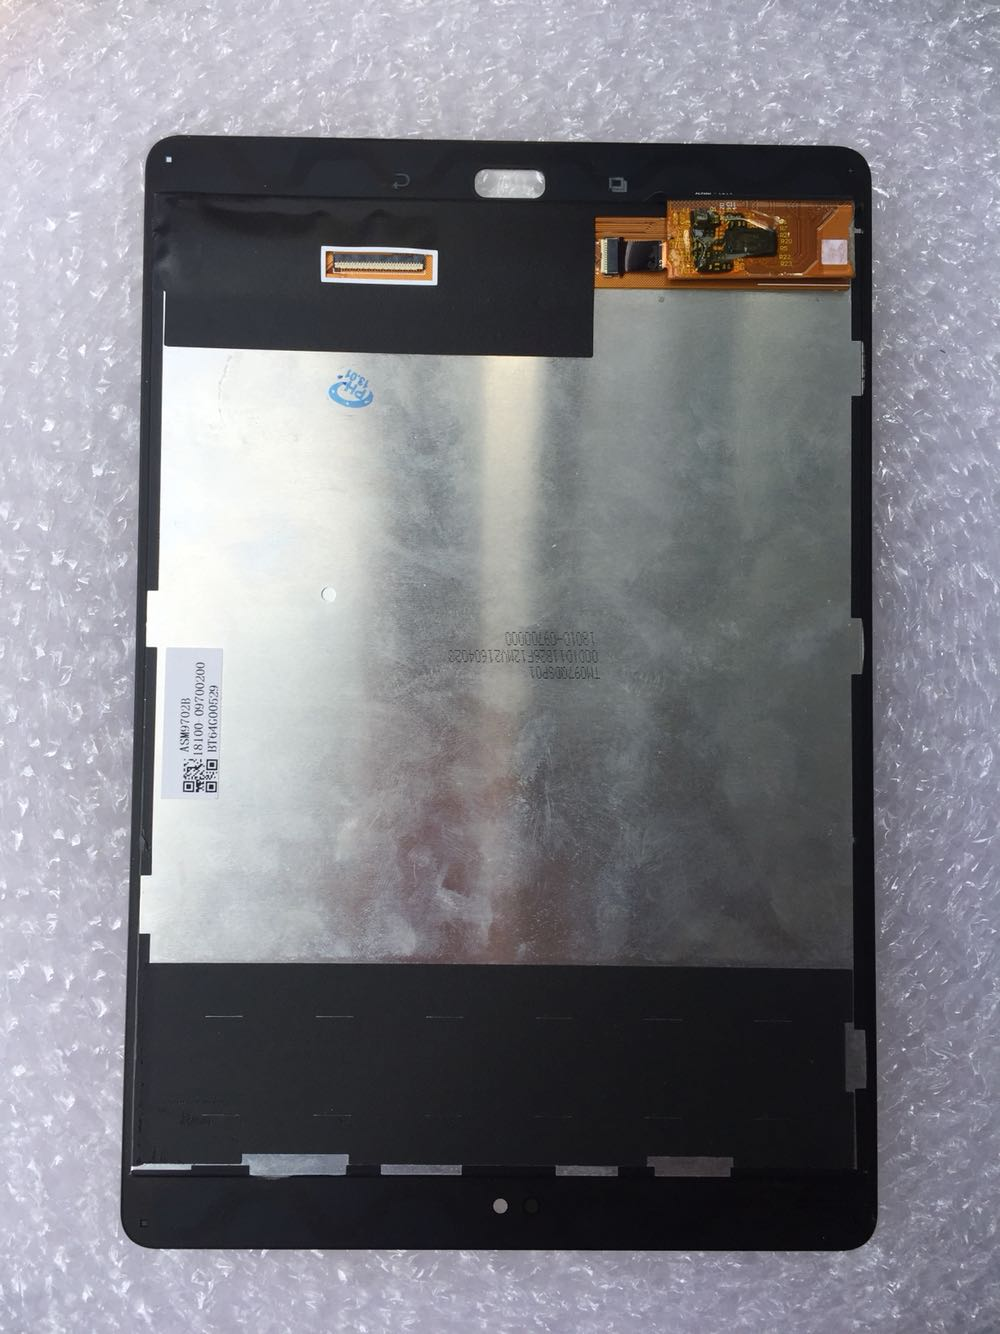 For ASUS ZenPad 3S 10 Z500M P027 Z500KL P001 LCD Display Matrix Touch Screen Digitizer Sensor Tablet PC Parts Assembly